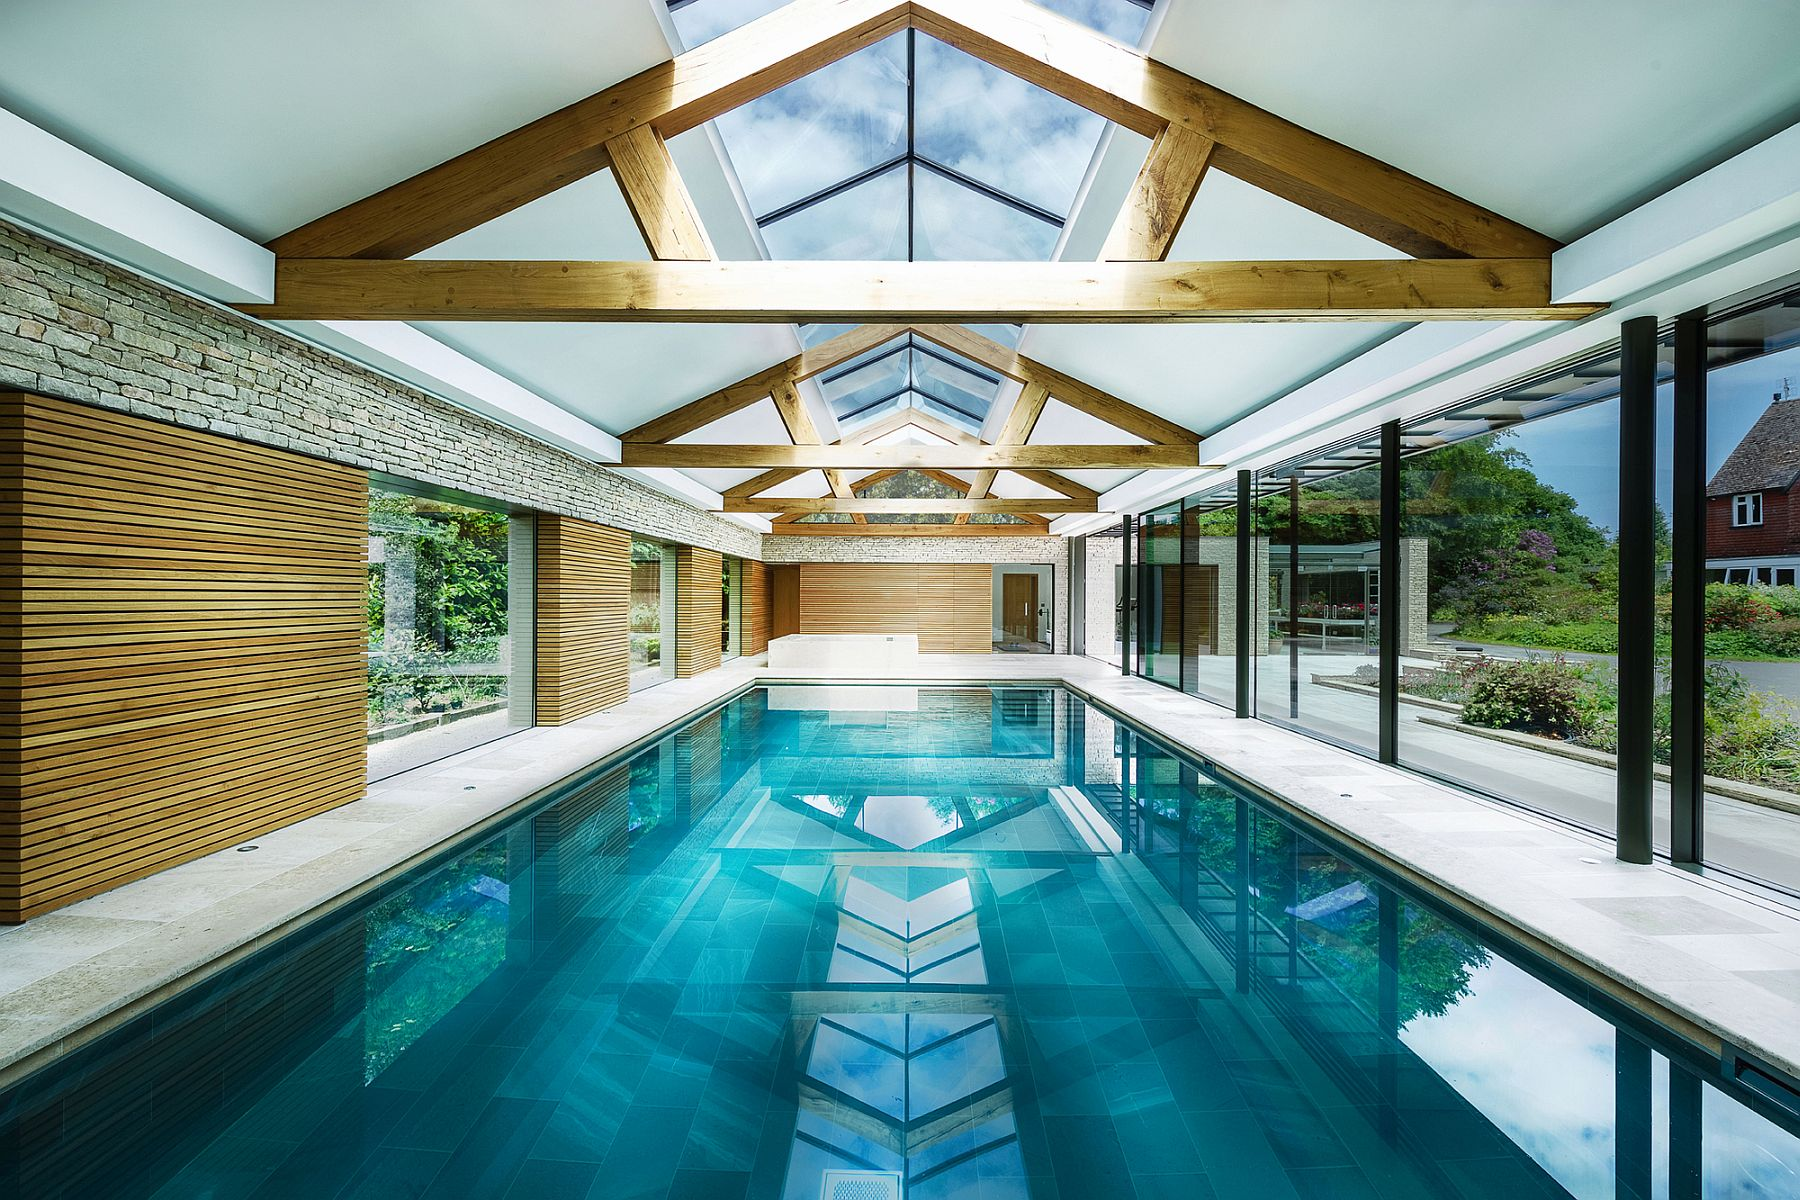 Expansive pool house in UK with skylights is a showstopper!